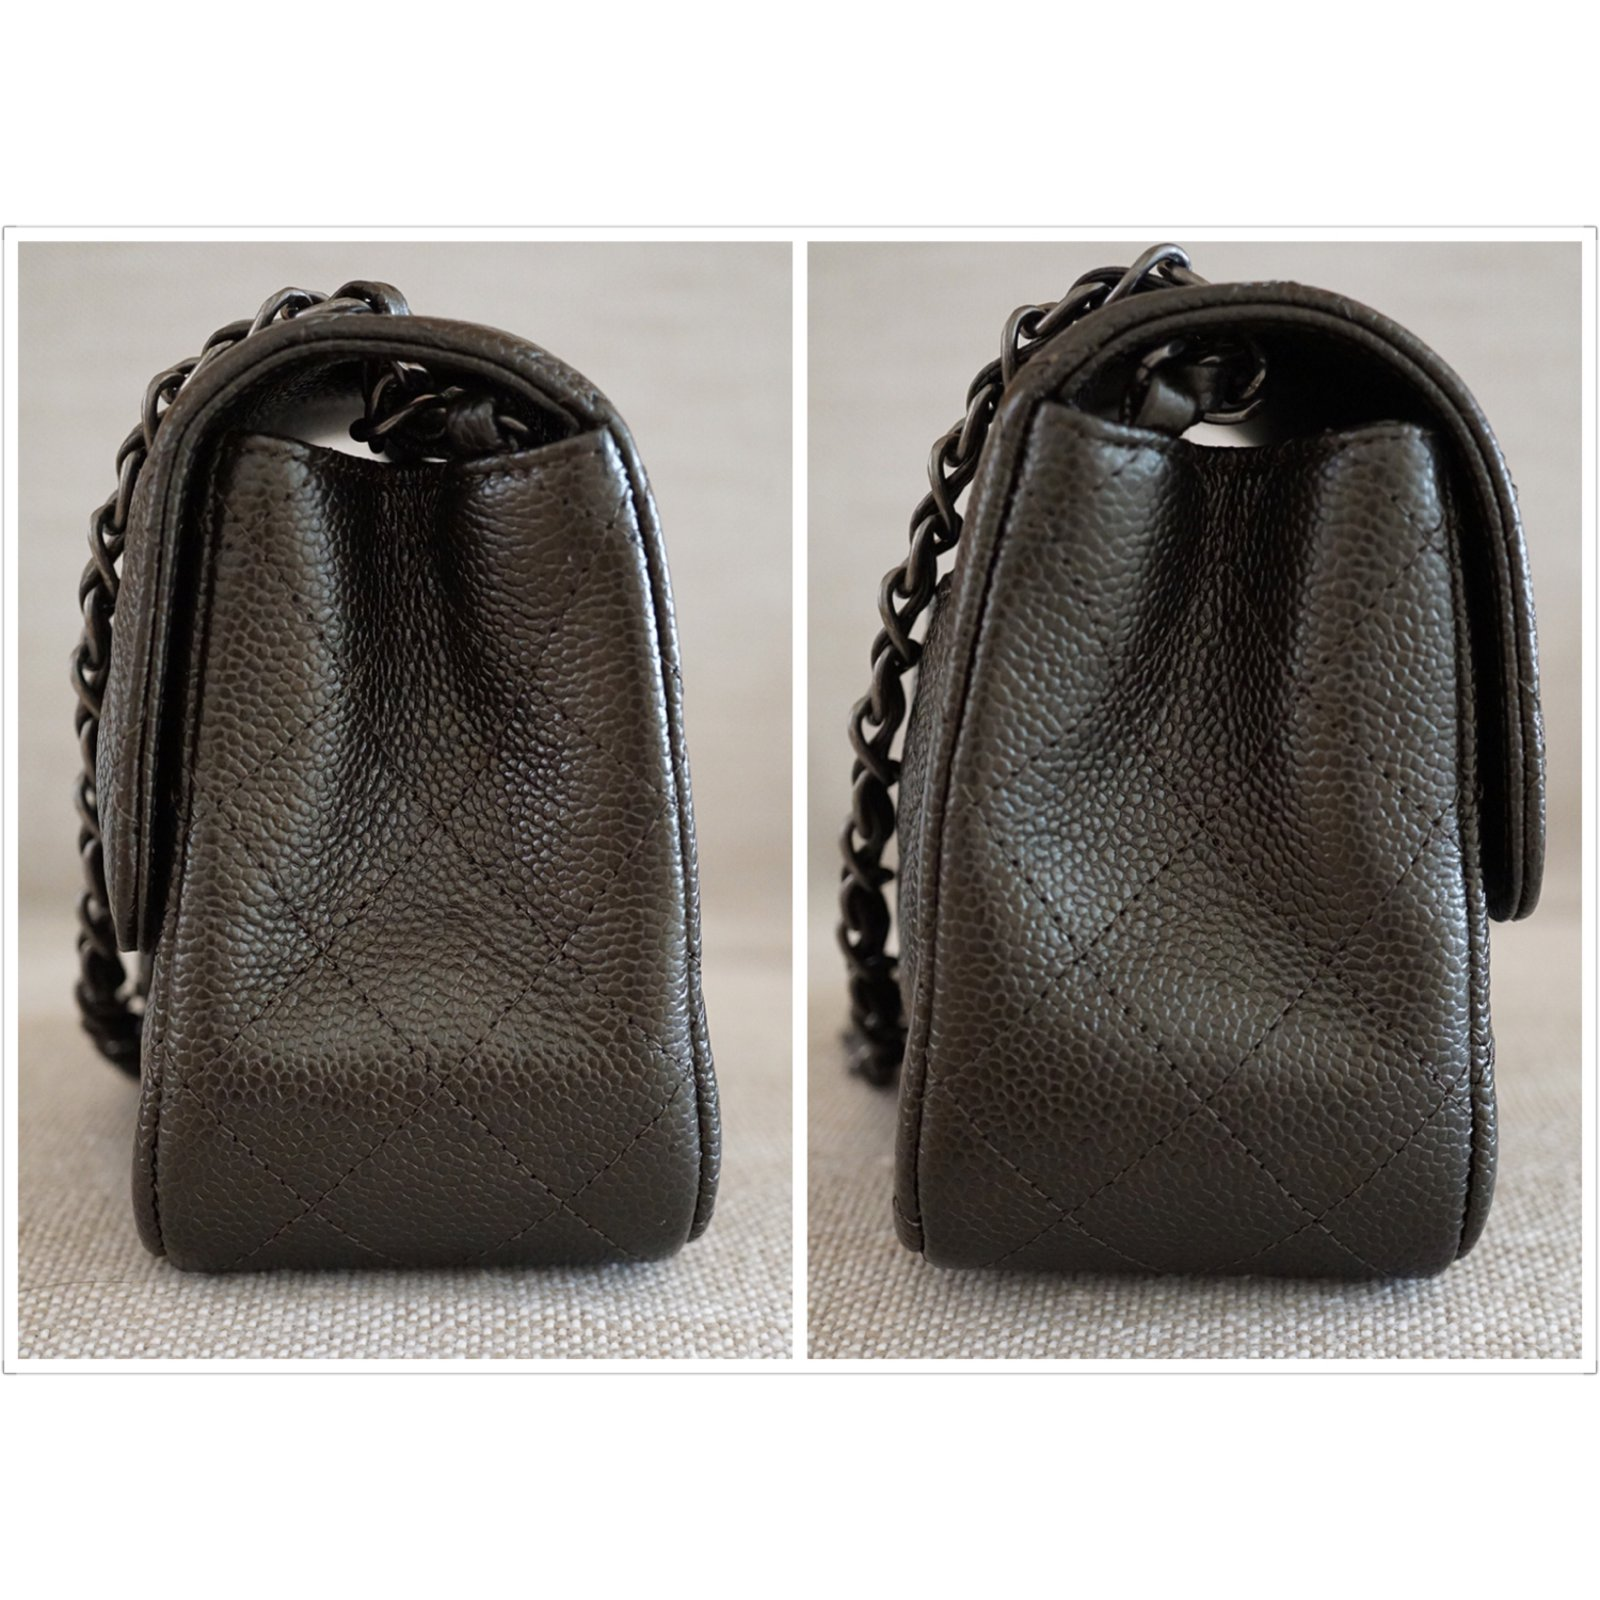 d594e6c2f50a35 Chanel Square Mini Flap Handbags Leather Dark grey ref.38561 - Joli Closet